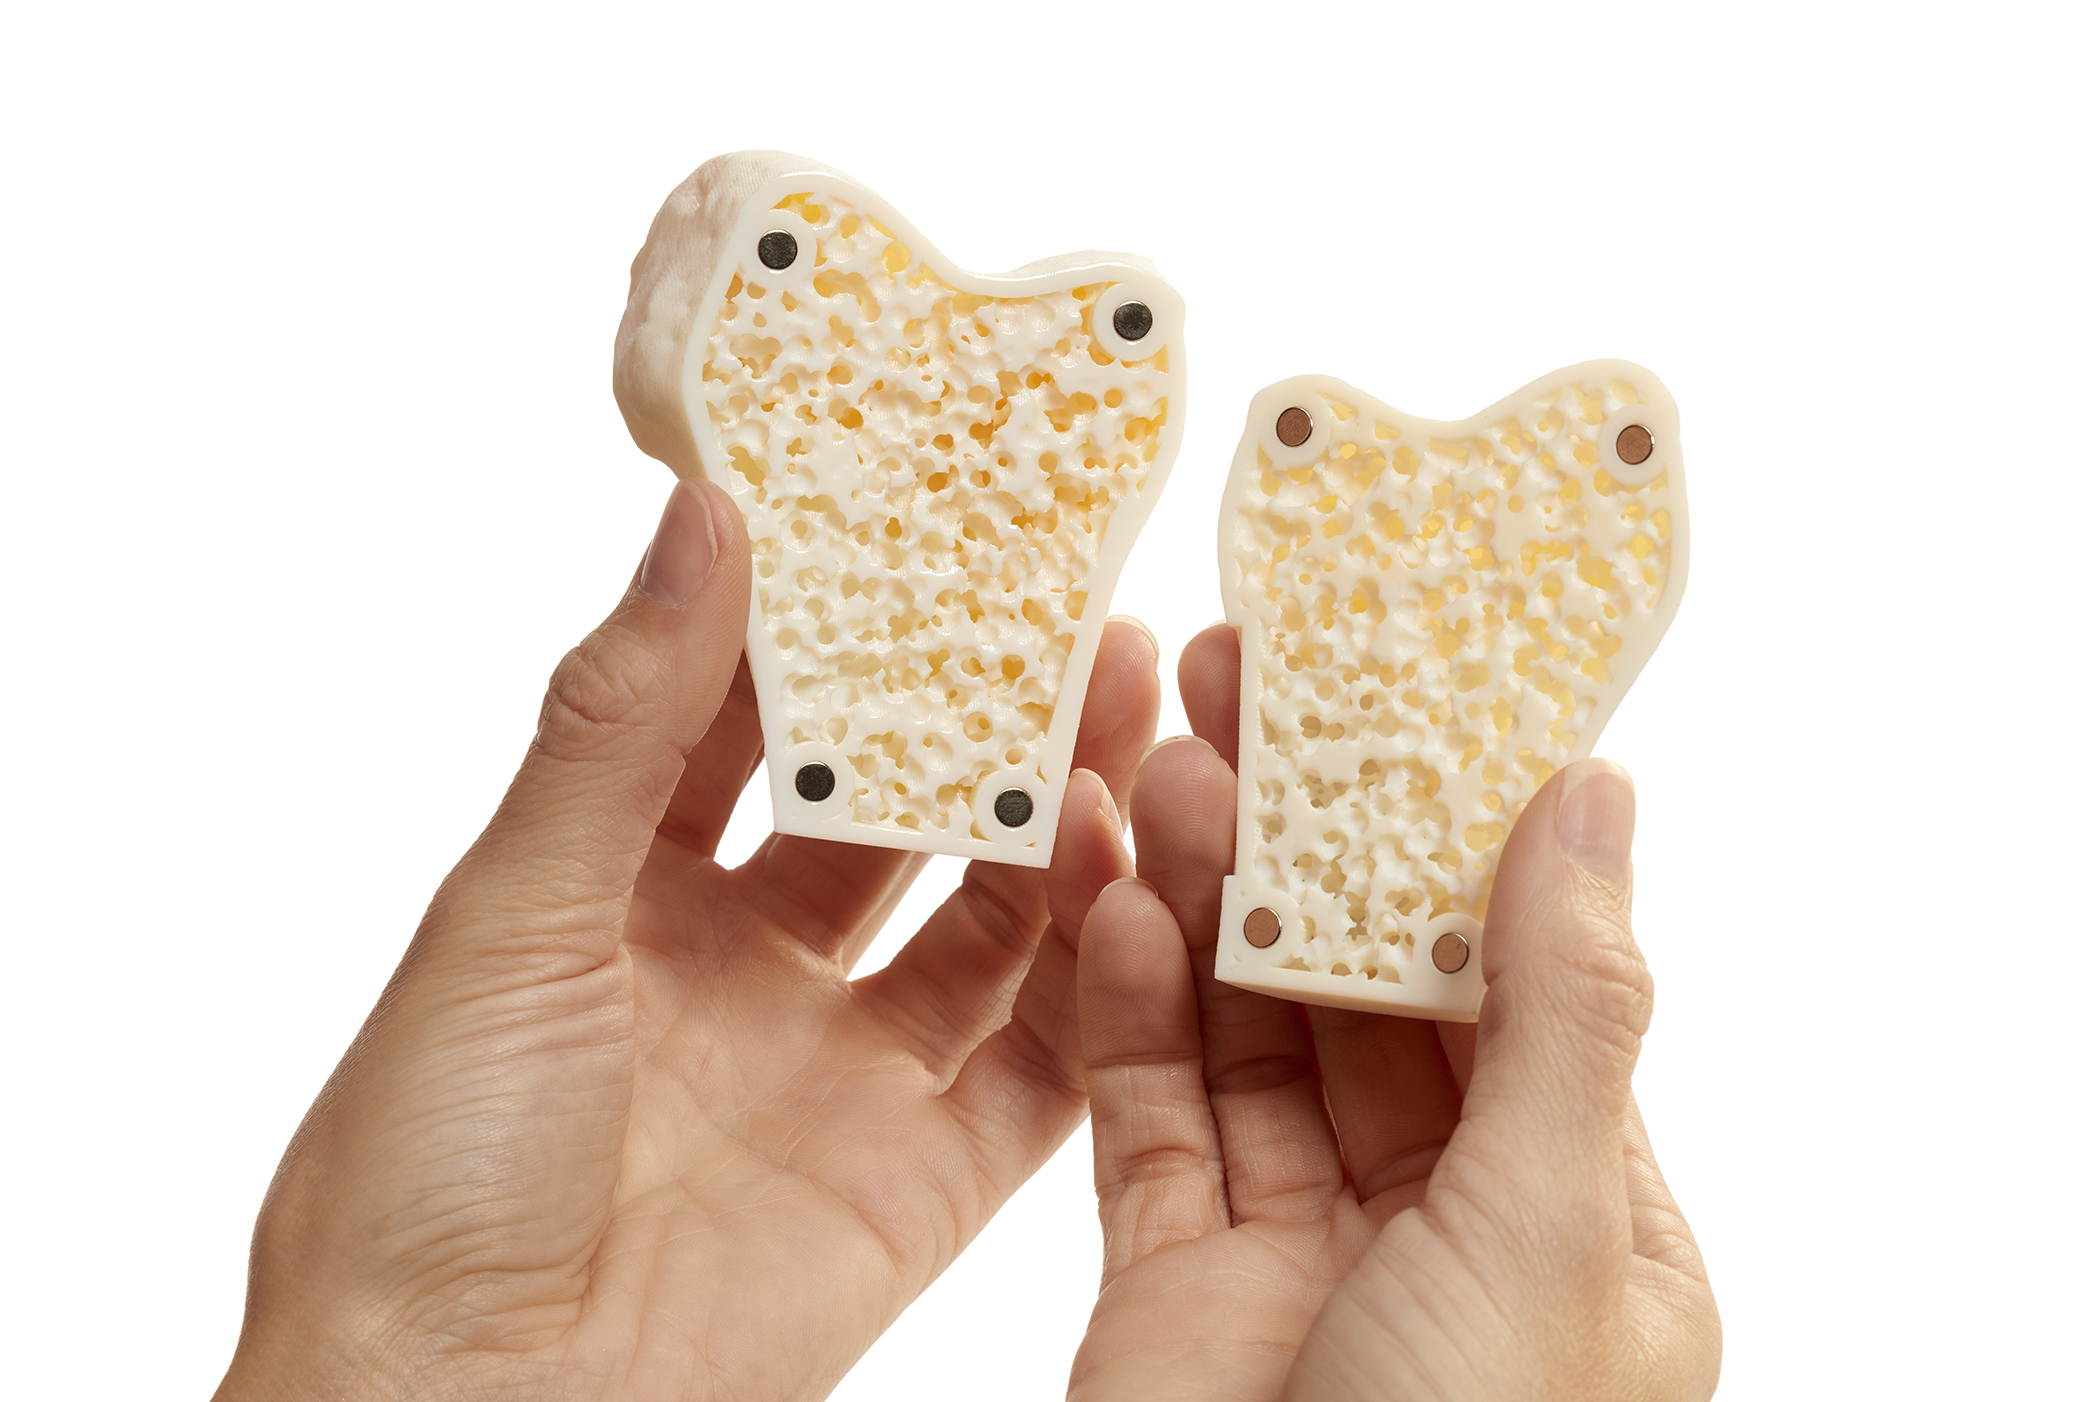 Stratasys Sets New Standard in Voxel-Controlled 3D Printing with New